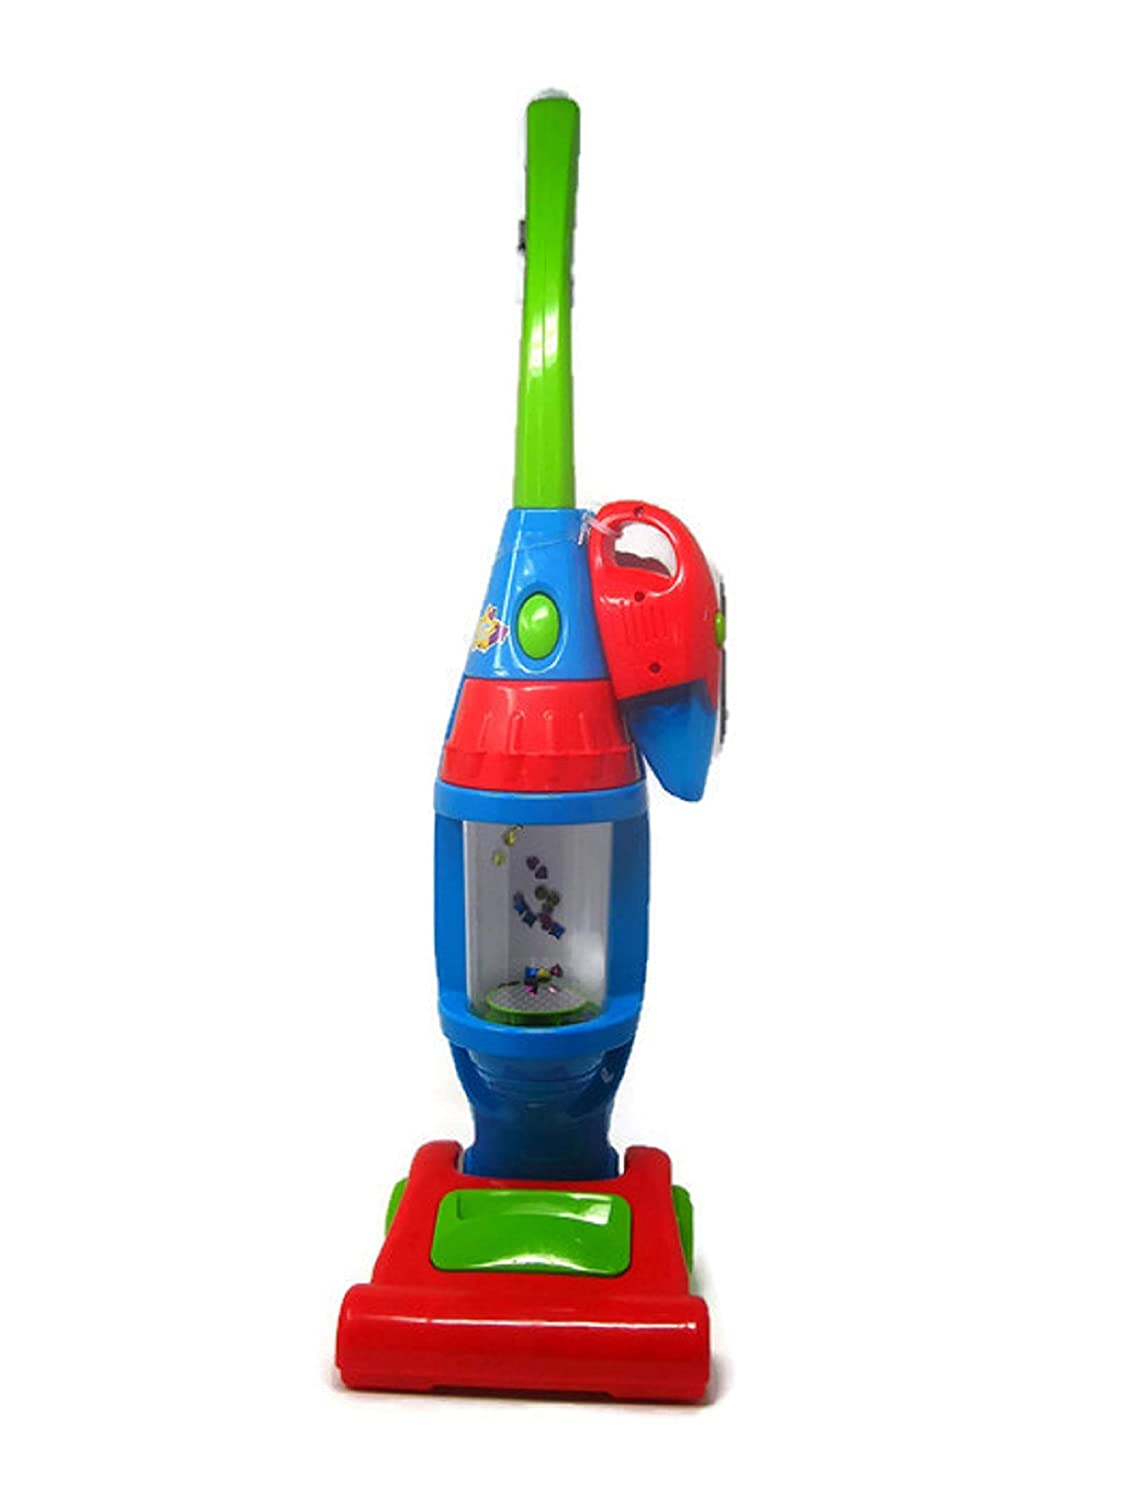 My Light Up Vacuum Cleaner Play Vac for Kid's with Dust Buster Attachment   B07HSY15CY